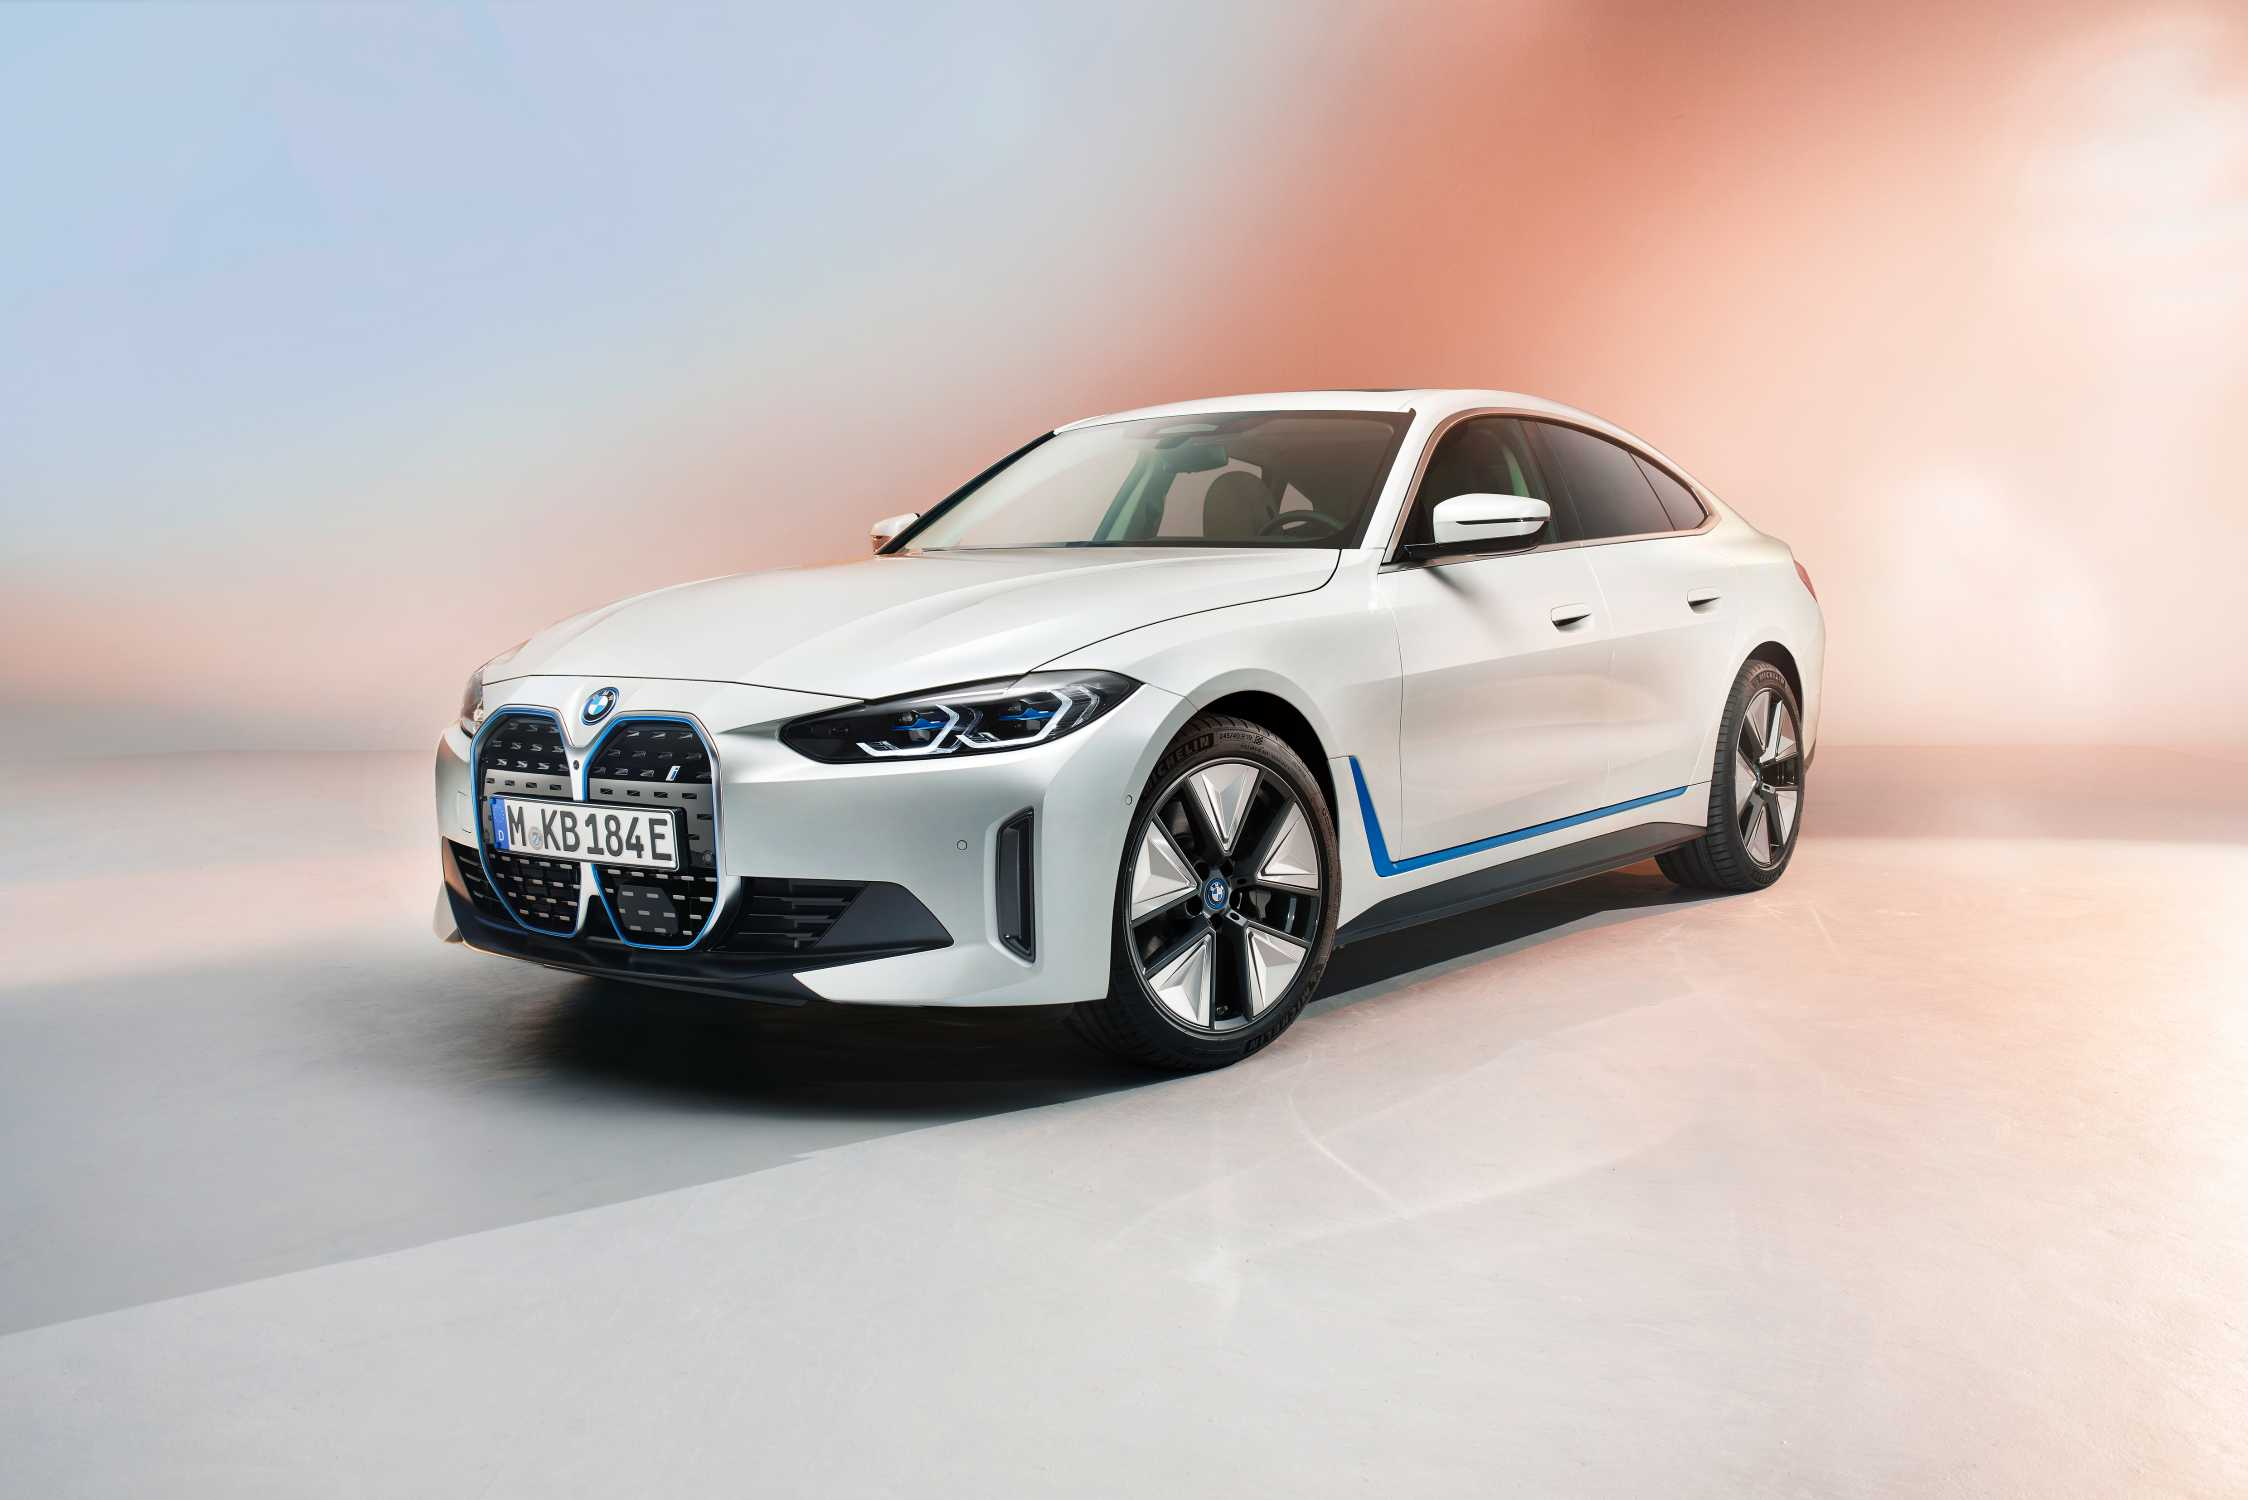 P90416000-first-view-on-the-upcoming-bmw-i4-pre-production-model-shown-3-2021-2248px.jpg